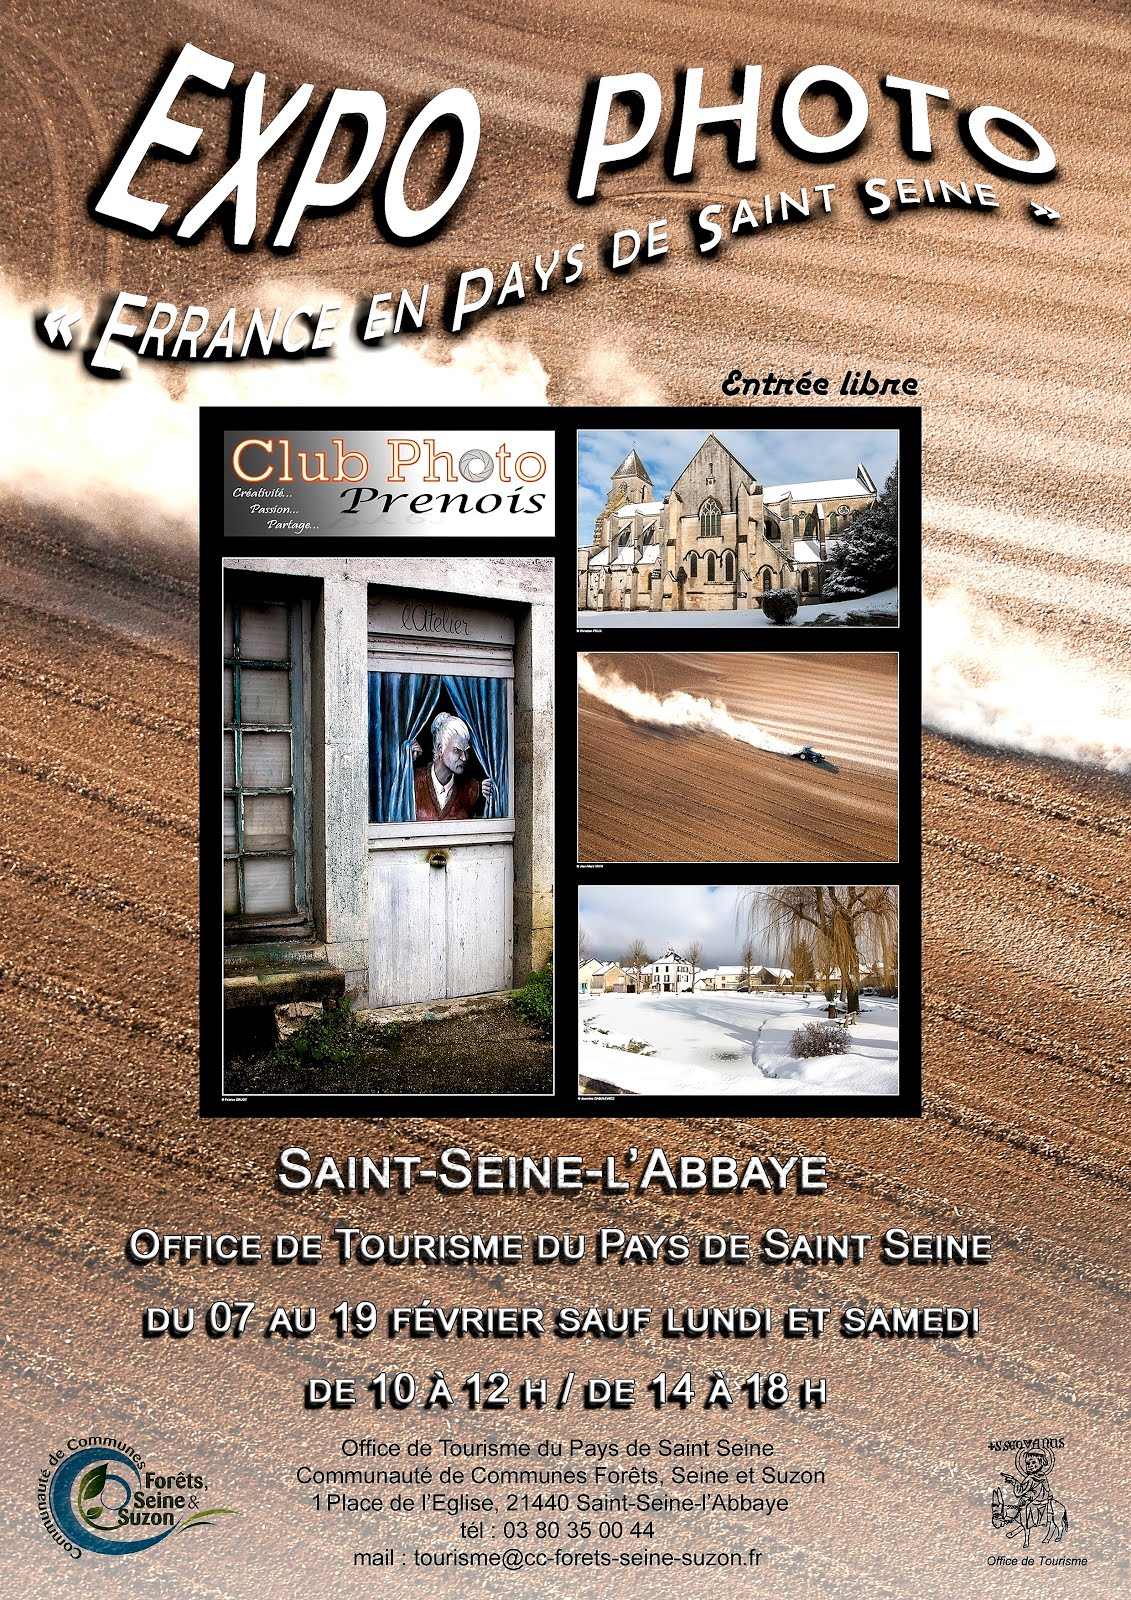 EXPO PHOTO A SAINT SEINE L'ABBAYE  DU 7 AU 19 FEVRIER A L'OFFICE DE TOURISME